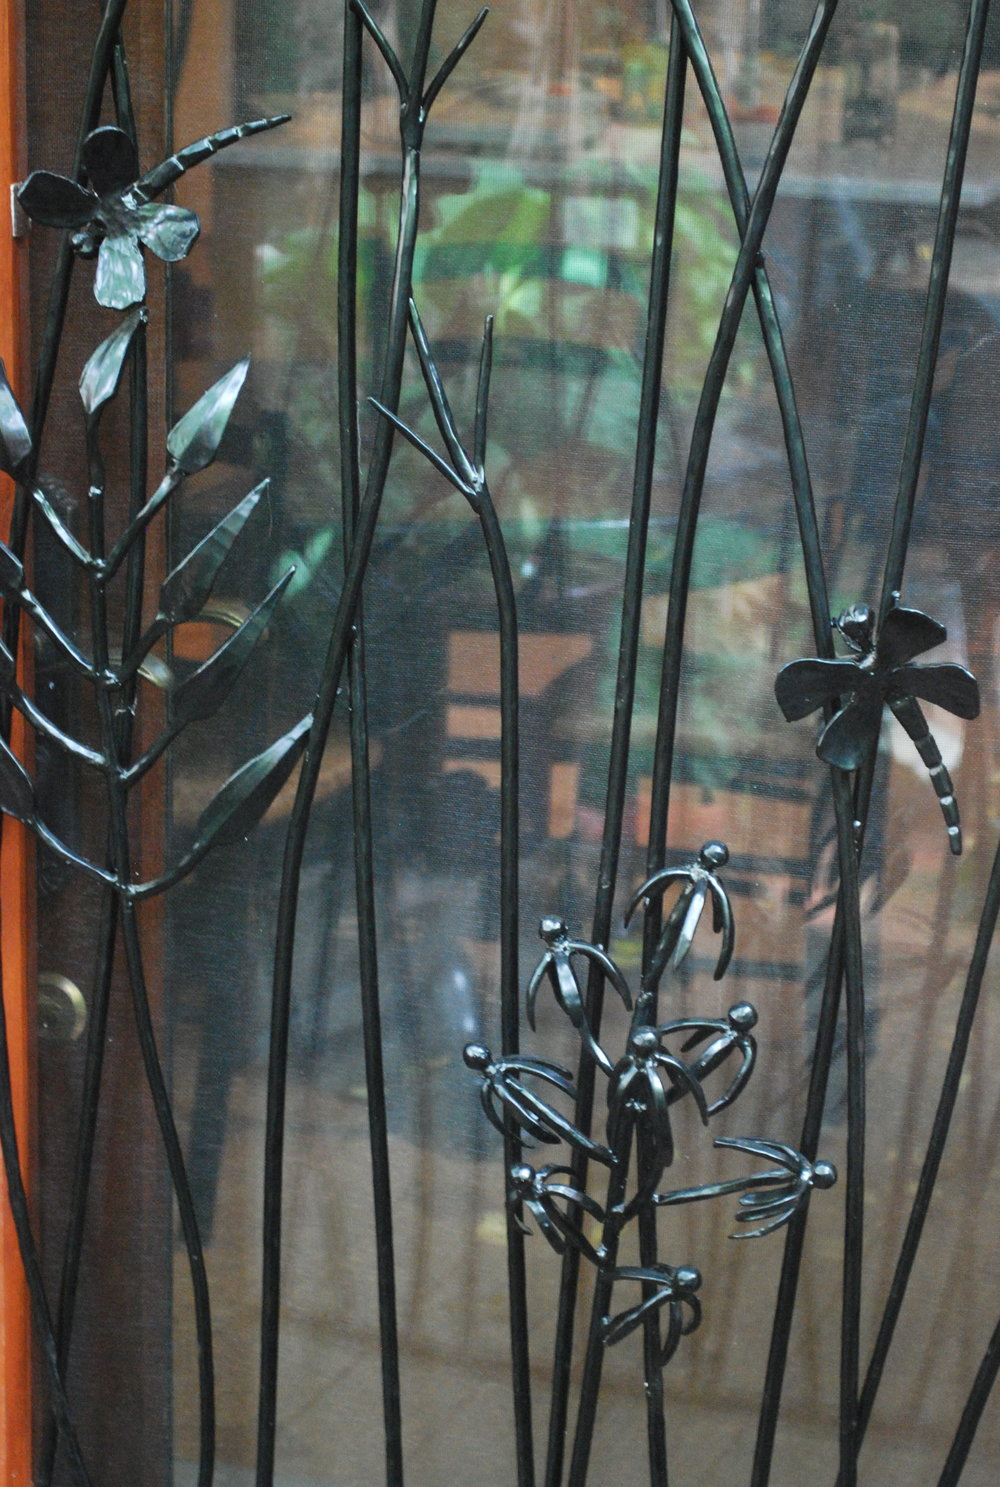 GRASS & DRAGONFLY WINDOW GRILL (details)